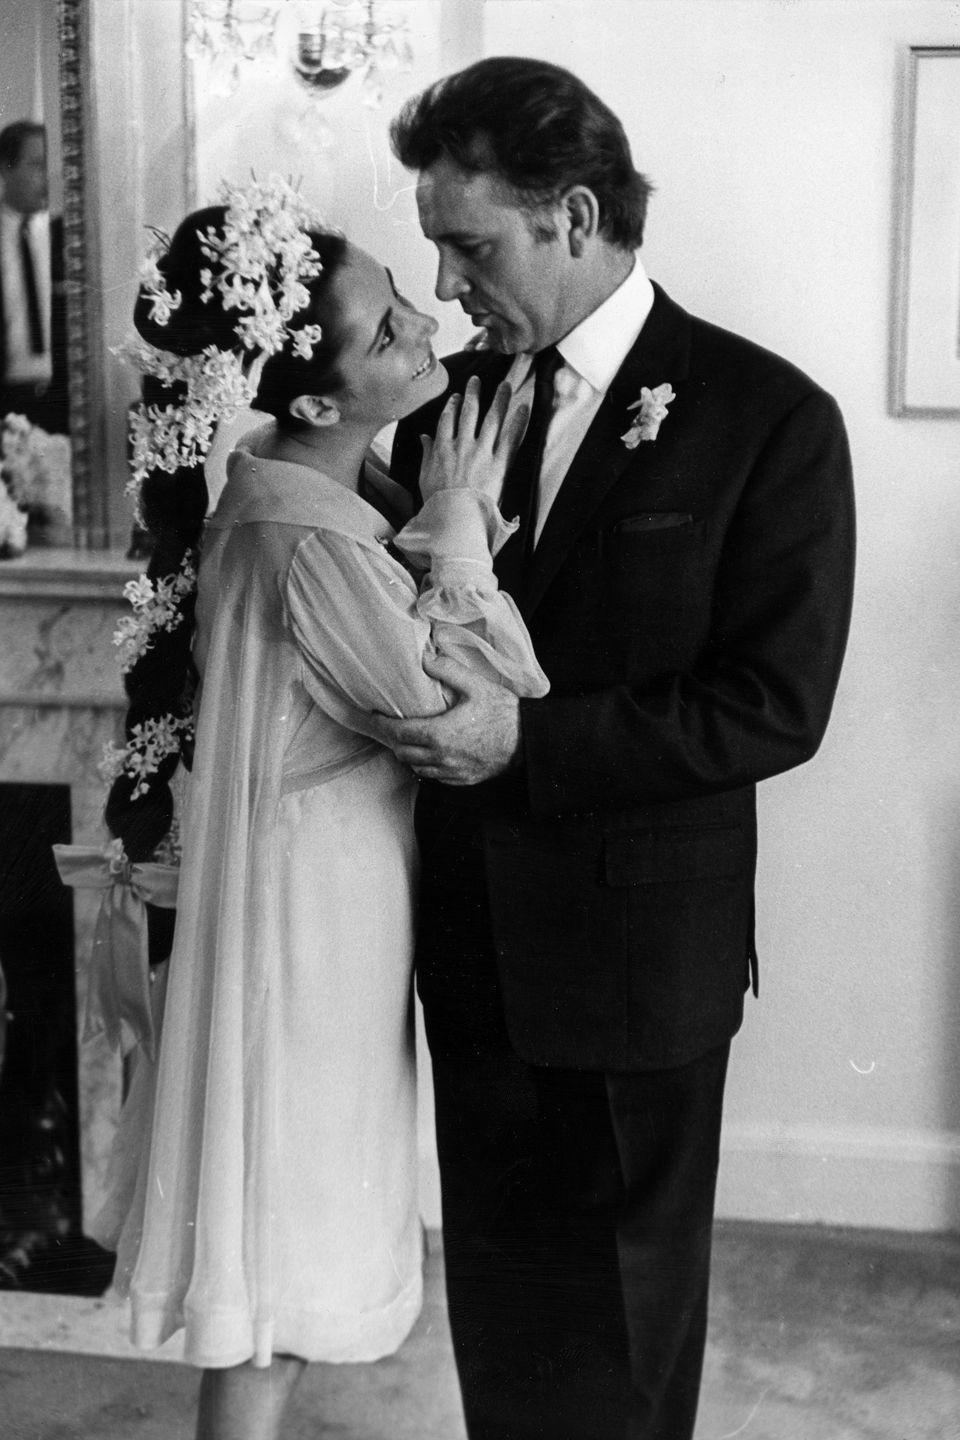 <p>After garnering plenty of media attention for their brazen affair while filming <em>Cleopatra</em> in Rome, Elizabeth Taylor married Richard Burton in a yellow chiffon dress and flower adorned braid at The Ritz-Carlton in Montreal. </p>